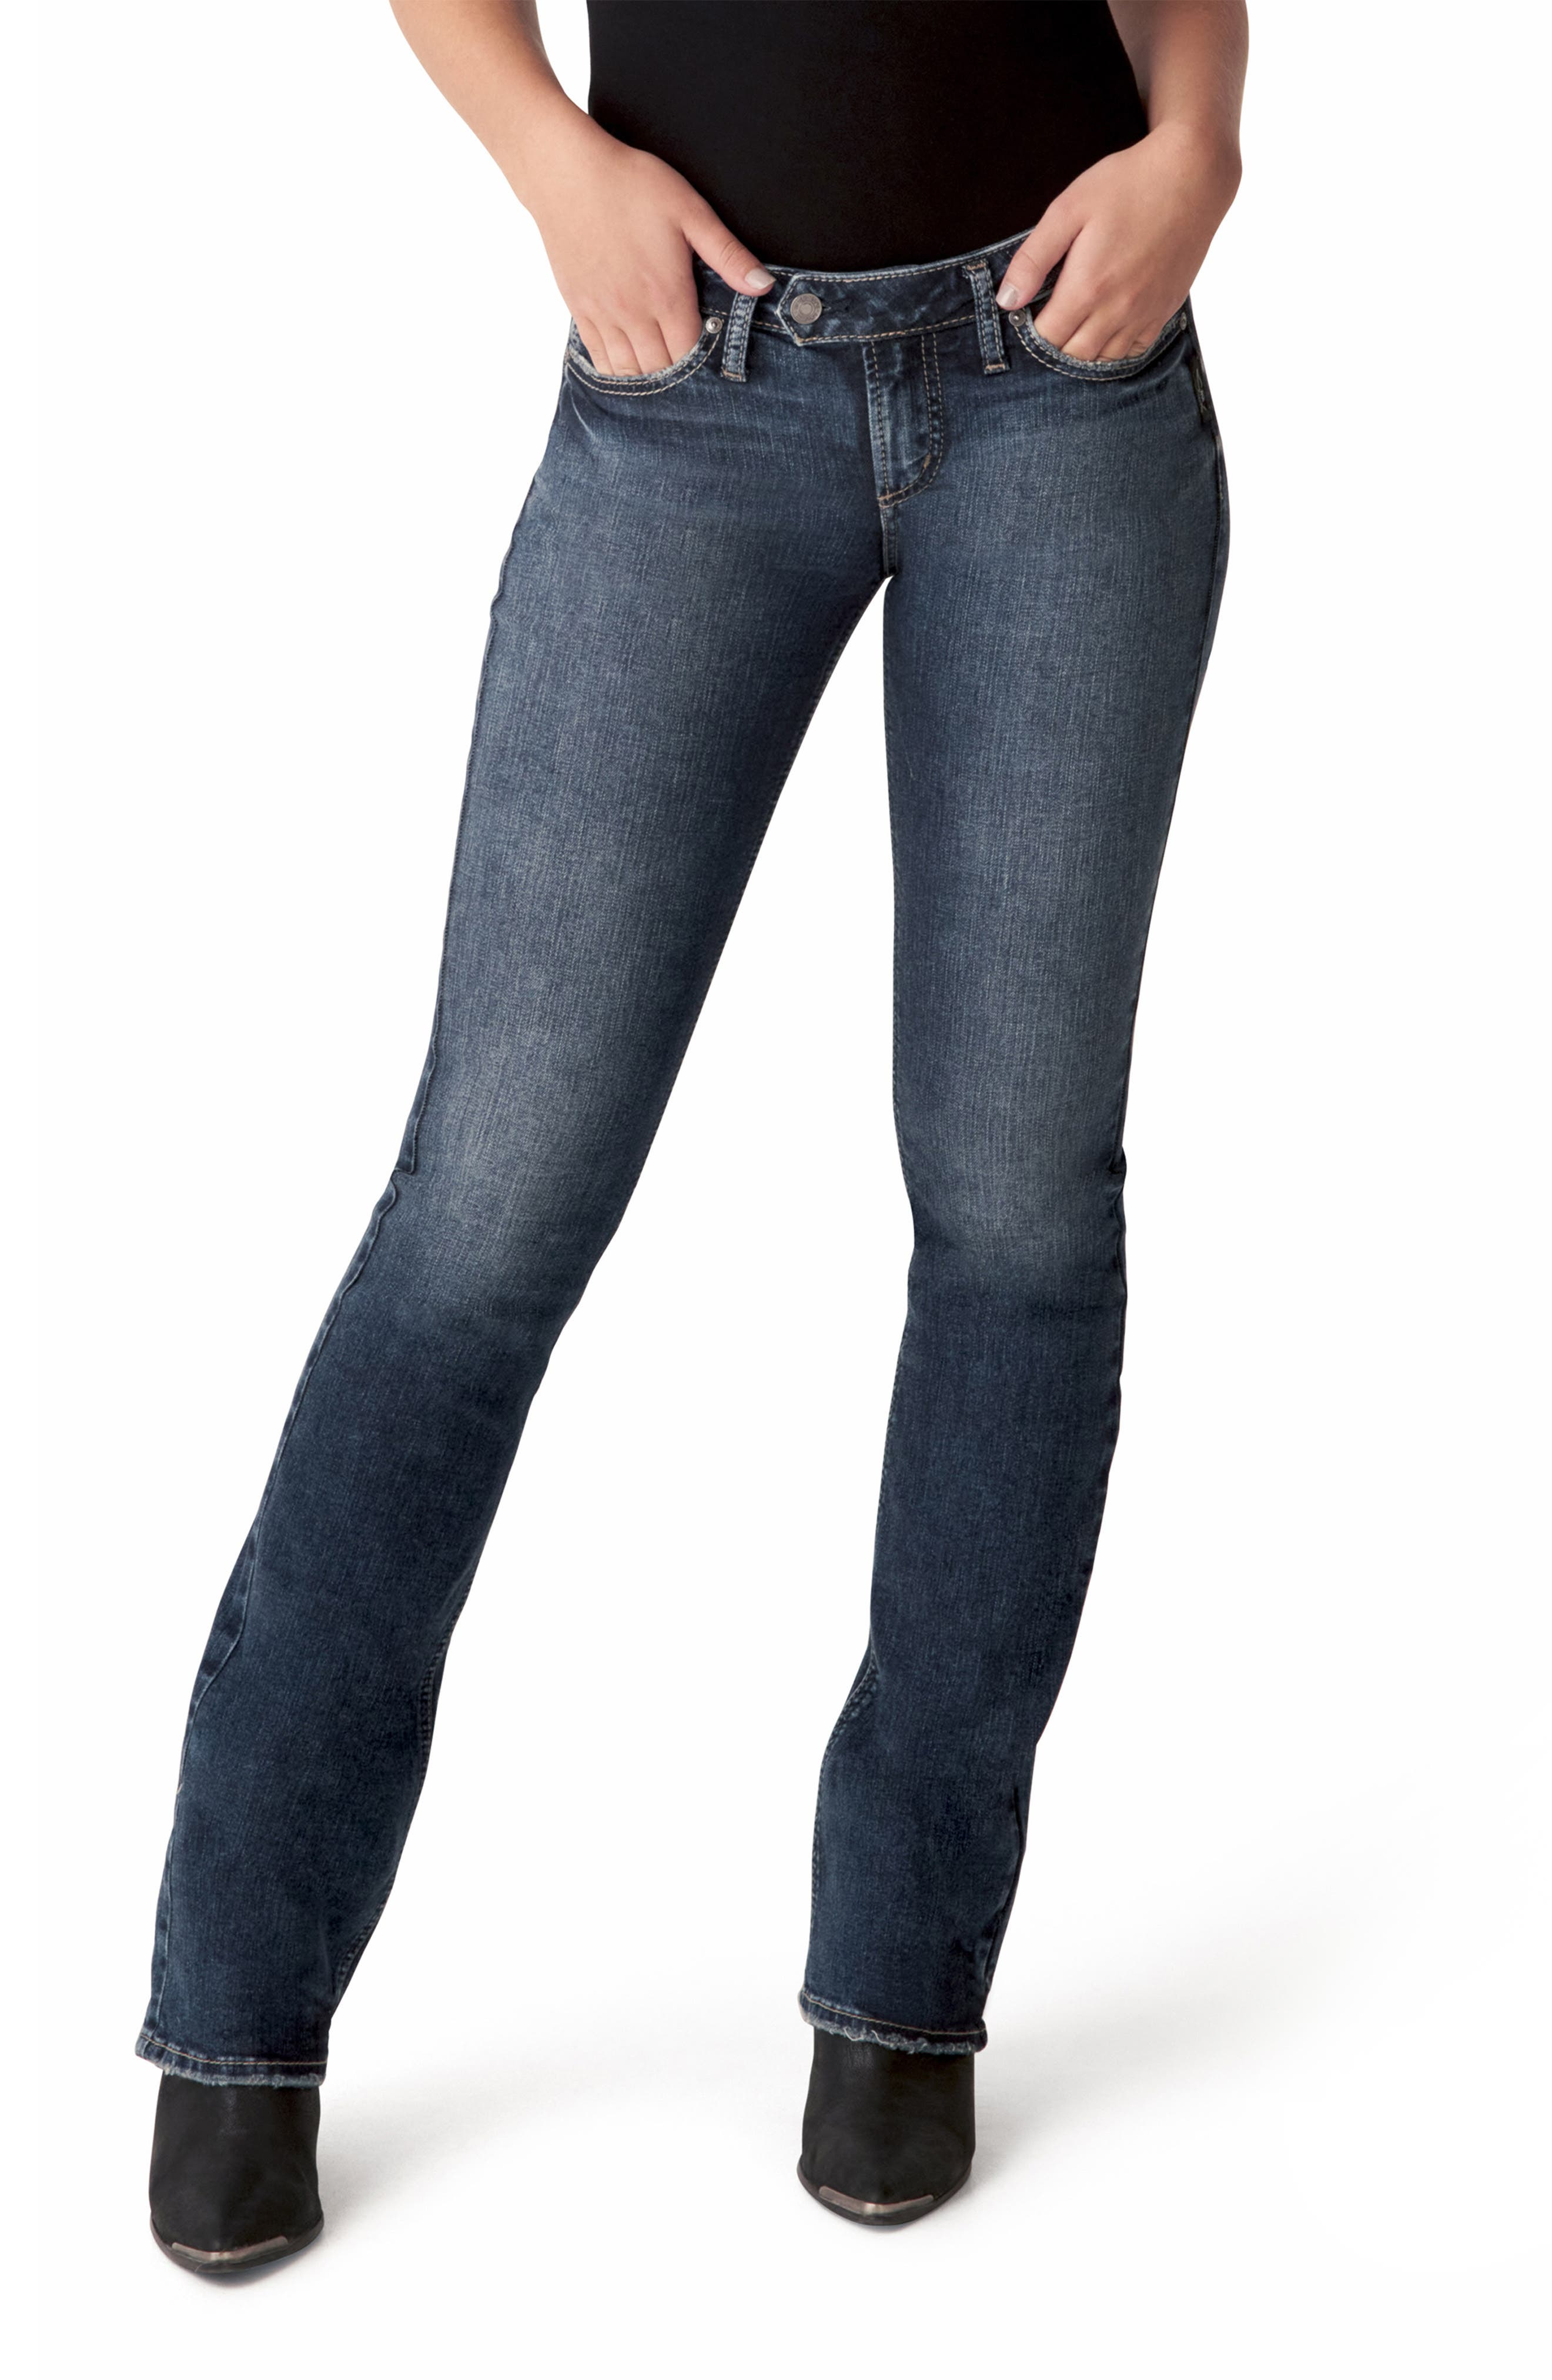 Women's Silver Jeans Co. Tuesday Low Rise Slim Bootcut Jeans